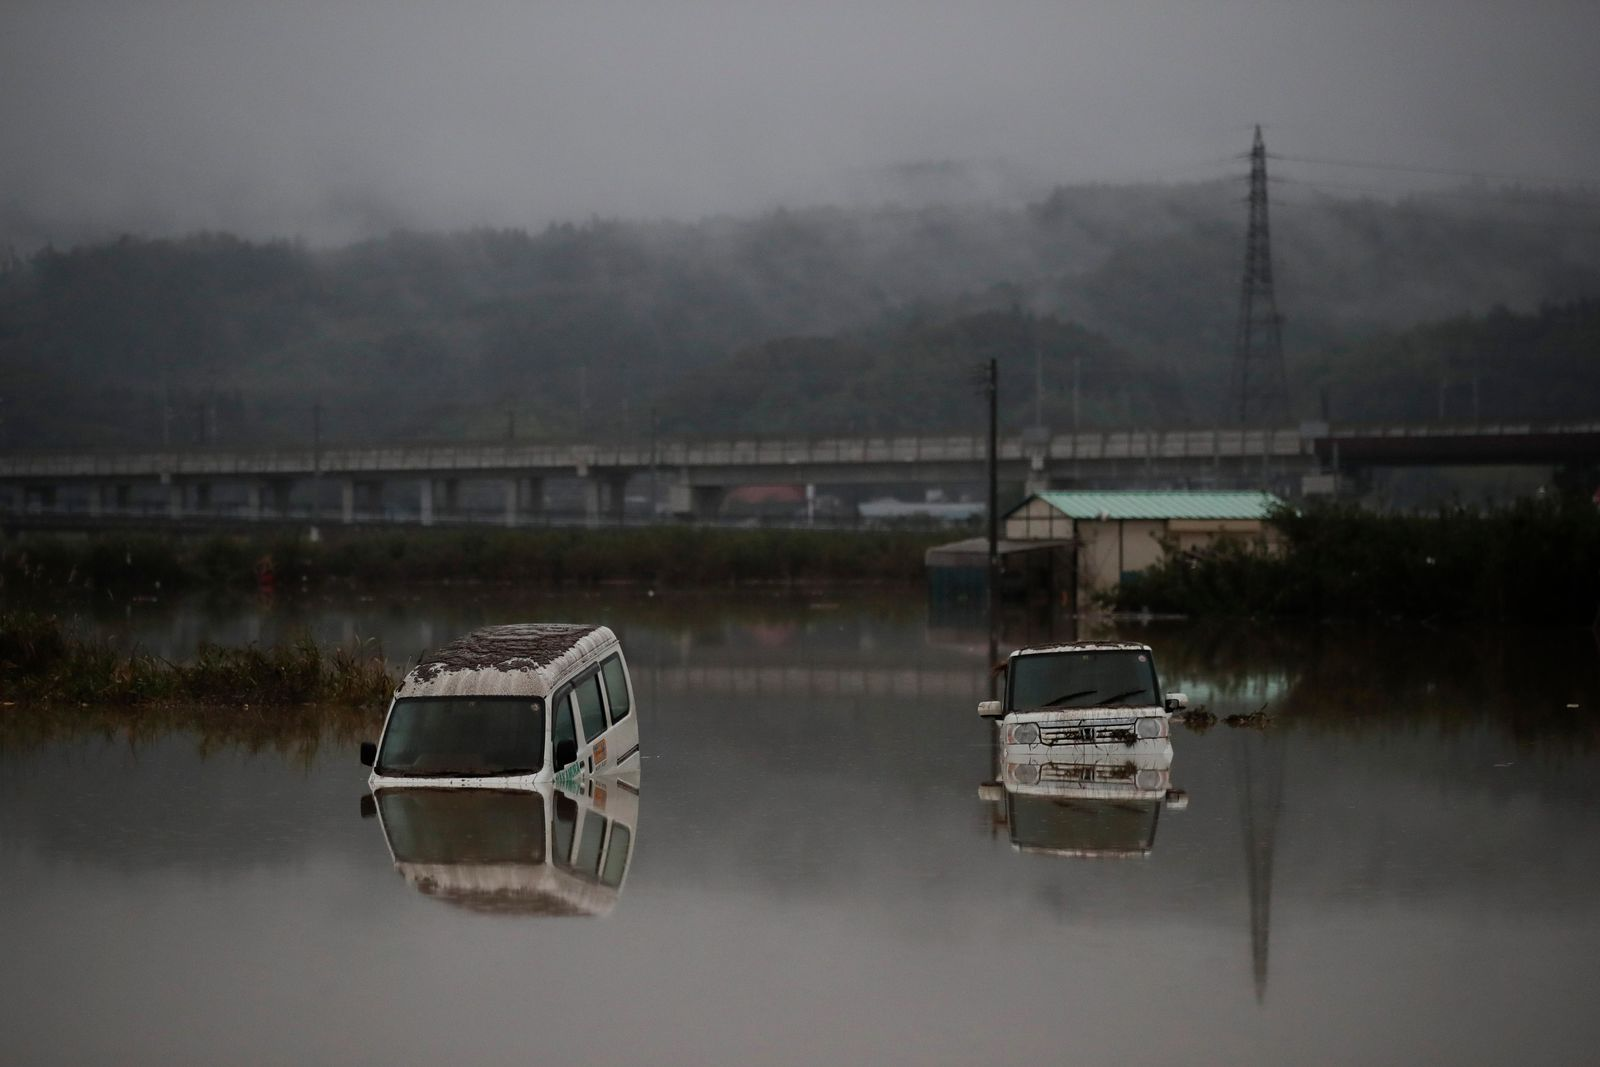 Two vehicles are submerged in floodwaters Monday, Oct. 14, 2019, in Hoyasu, Japan.{ } (AP Photo/Jae C. Hong)